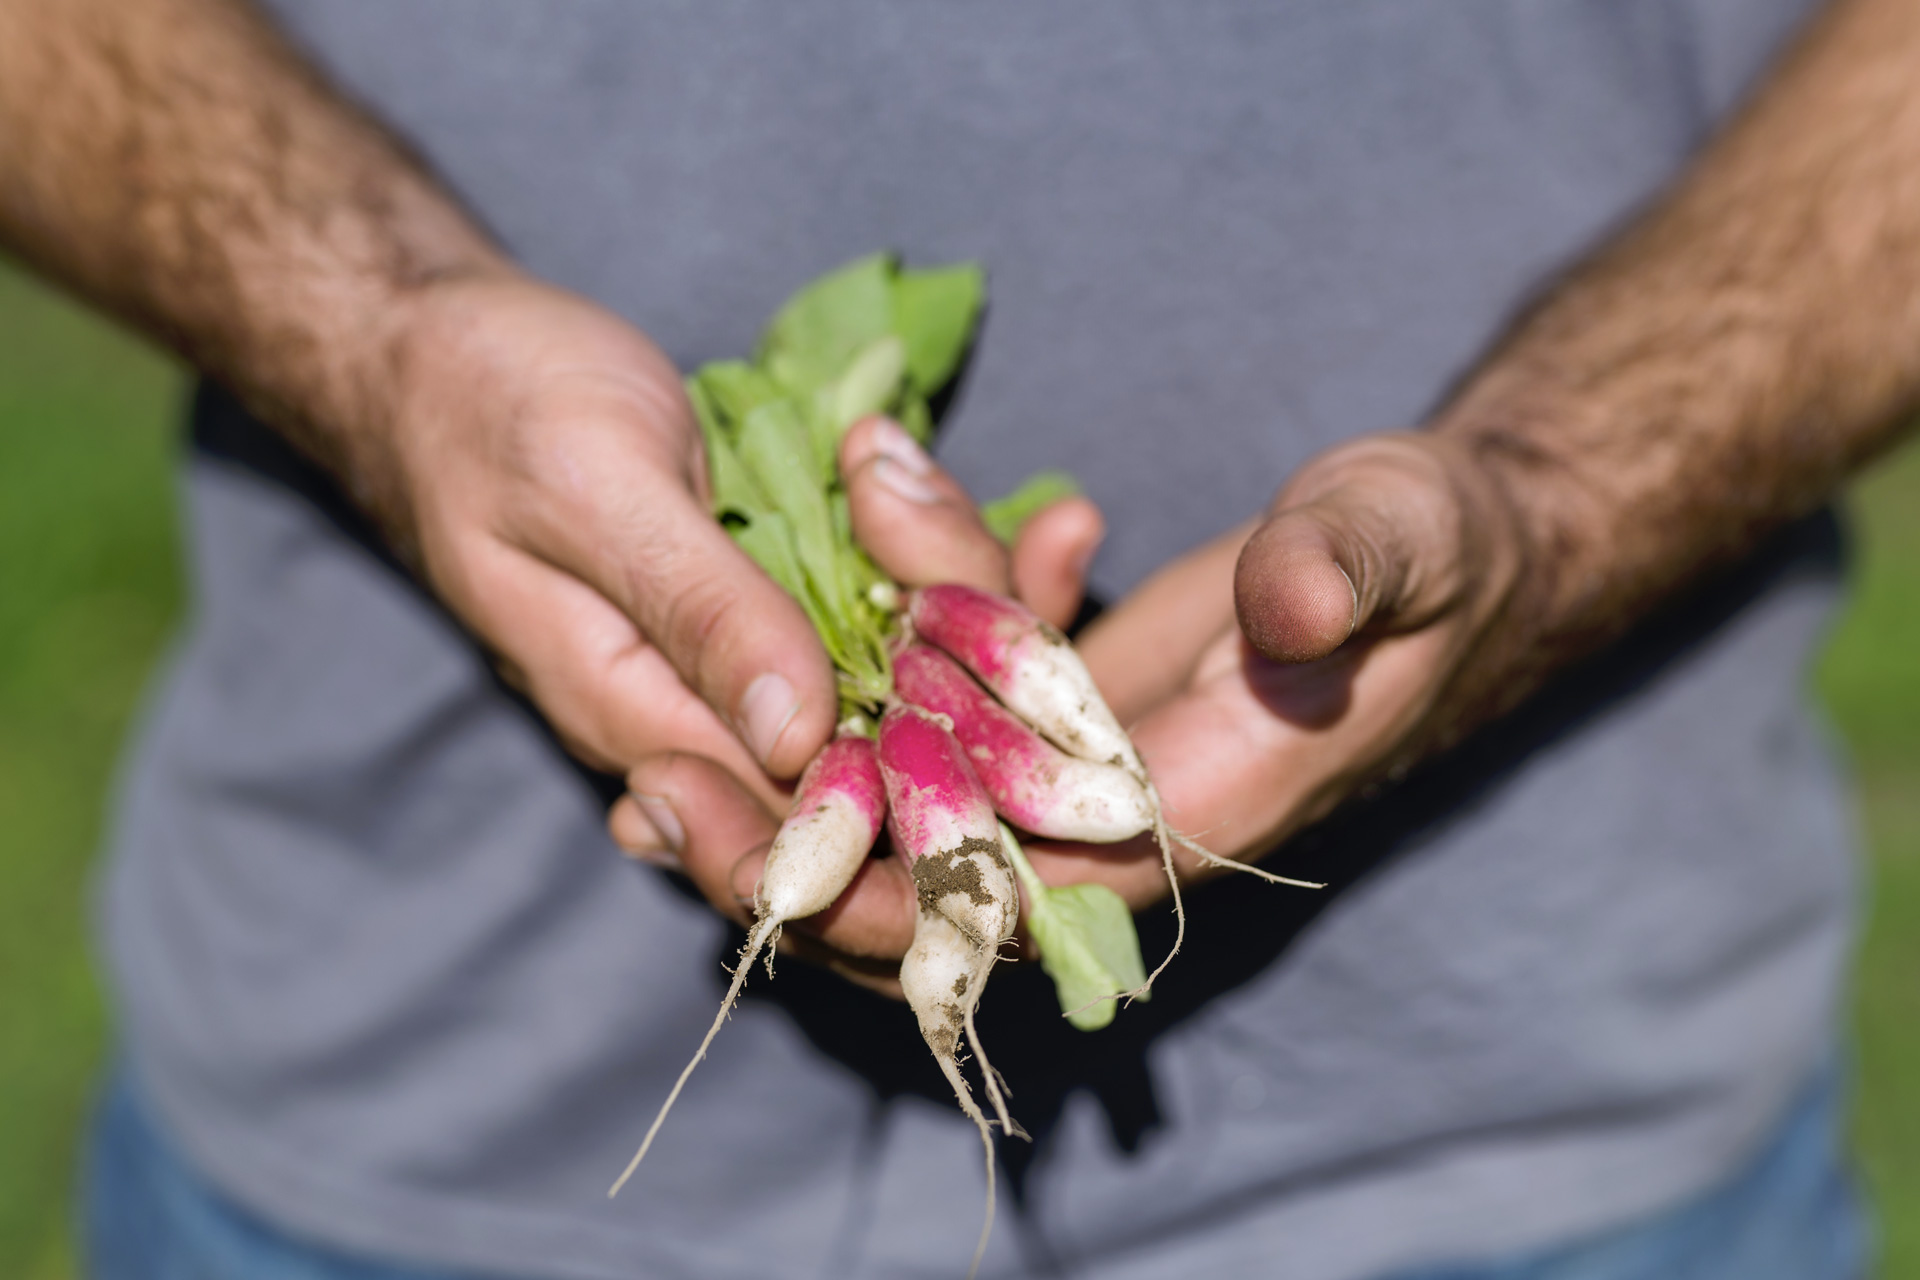 A handful of just-picked radishes